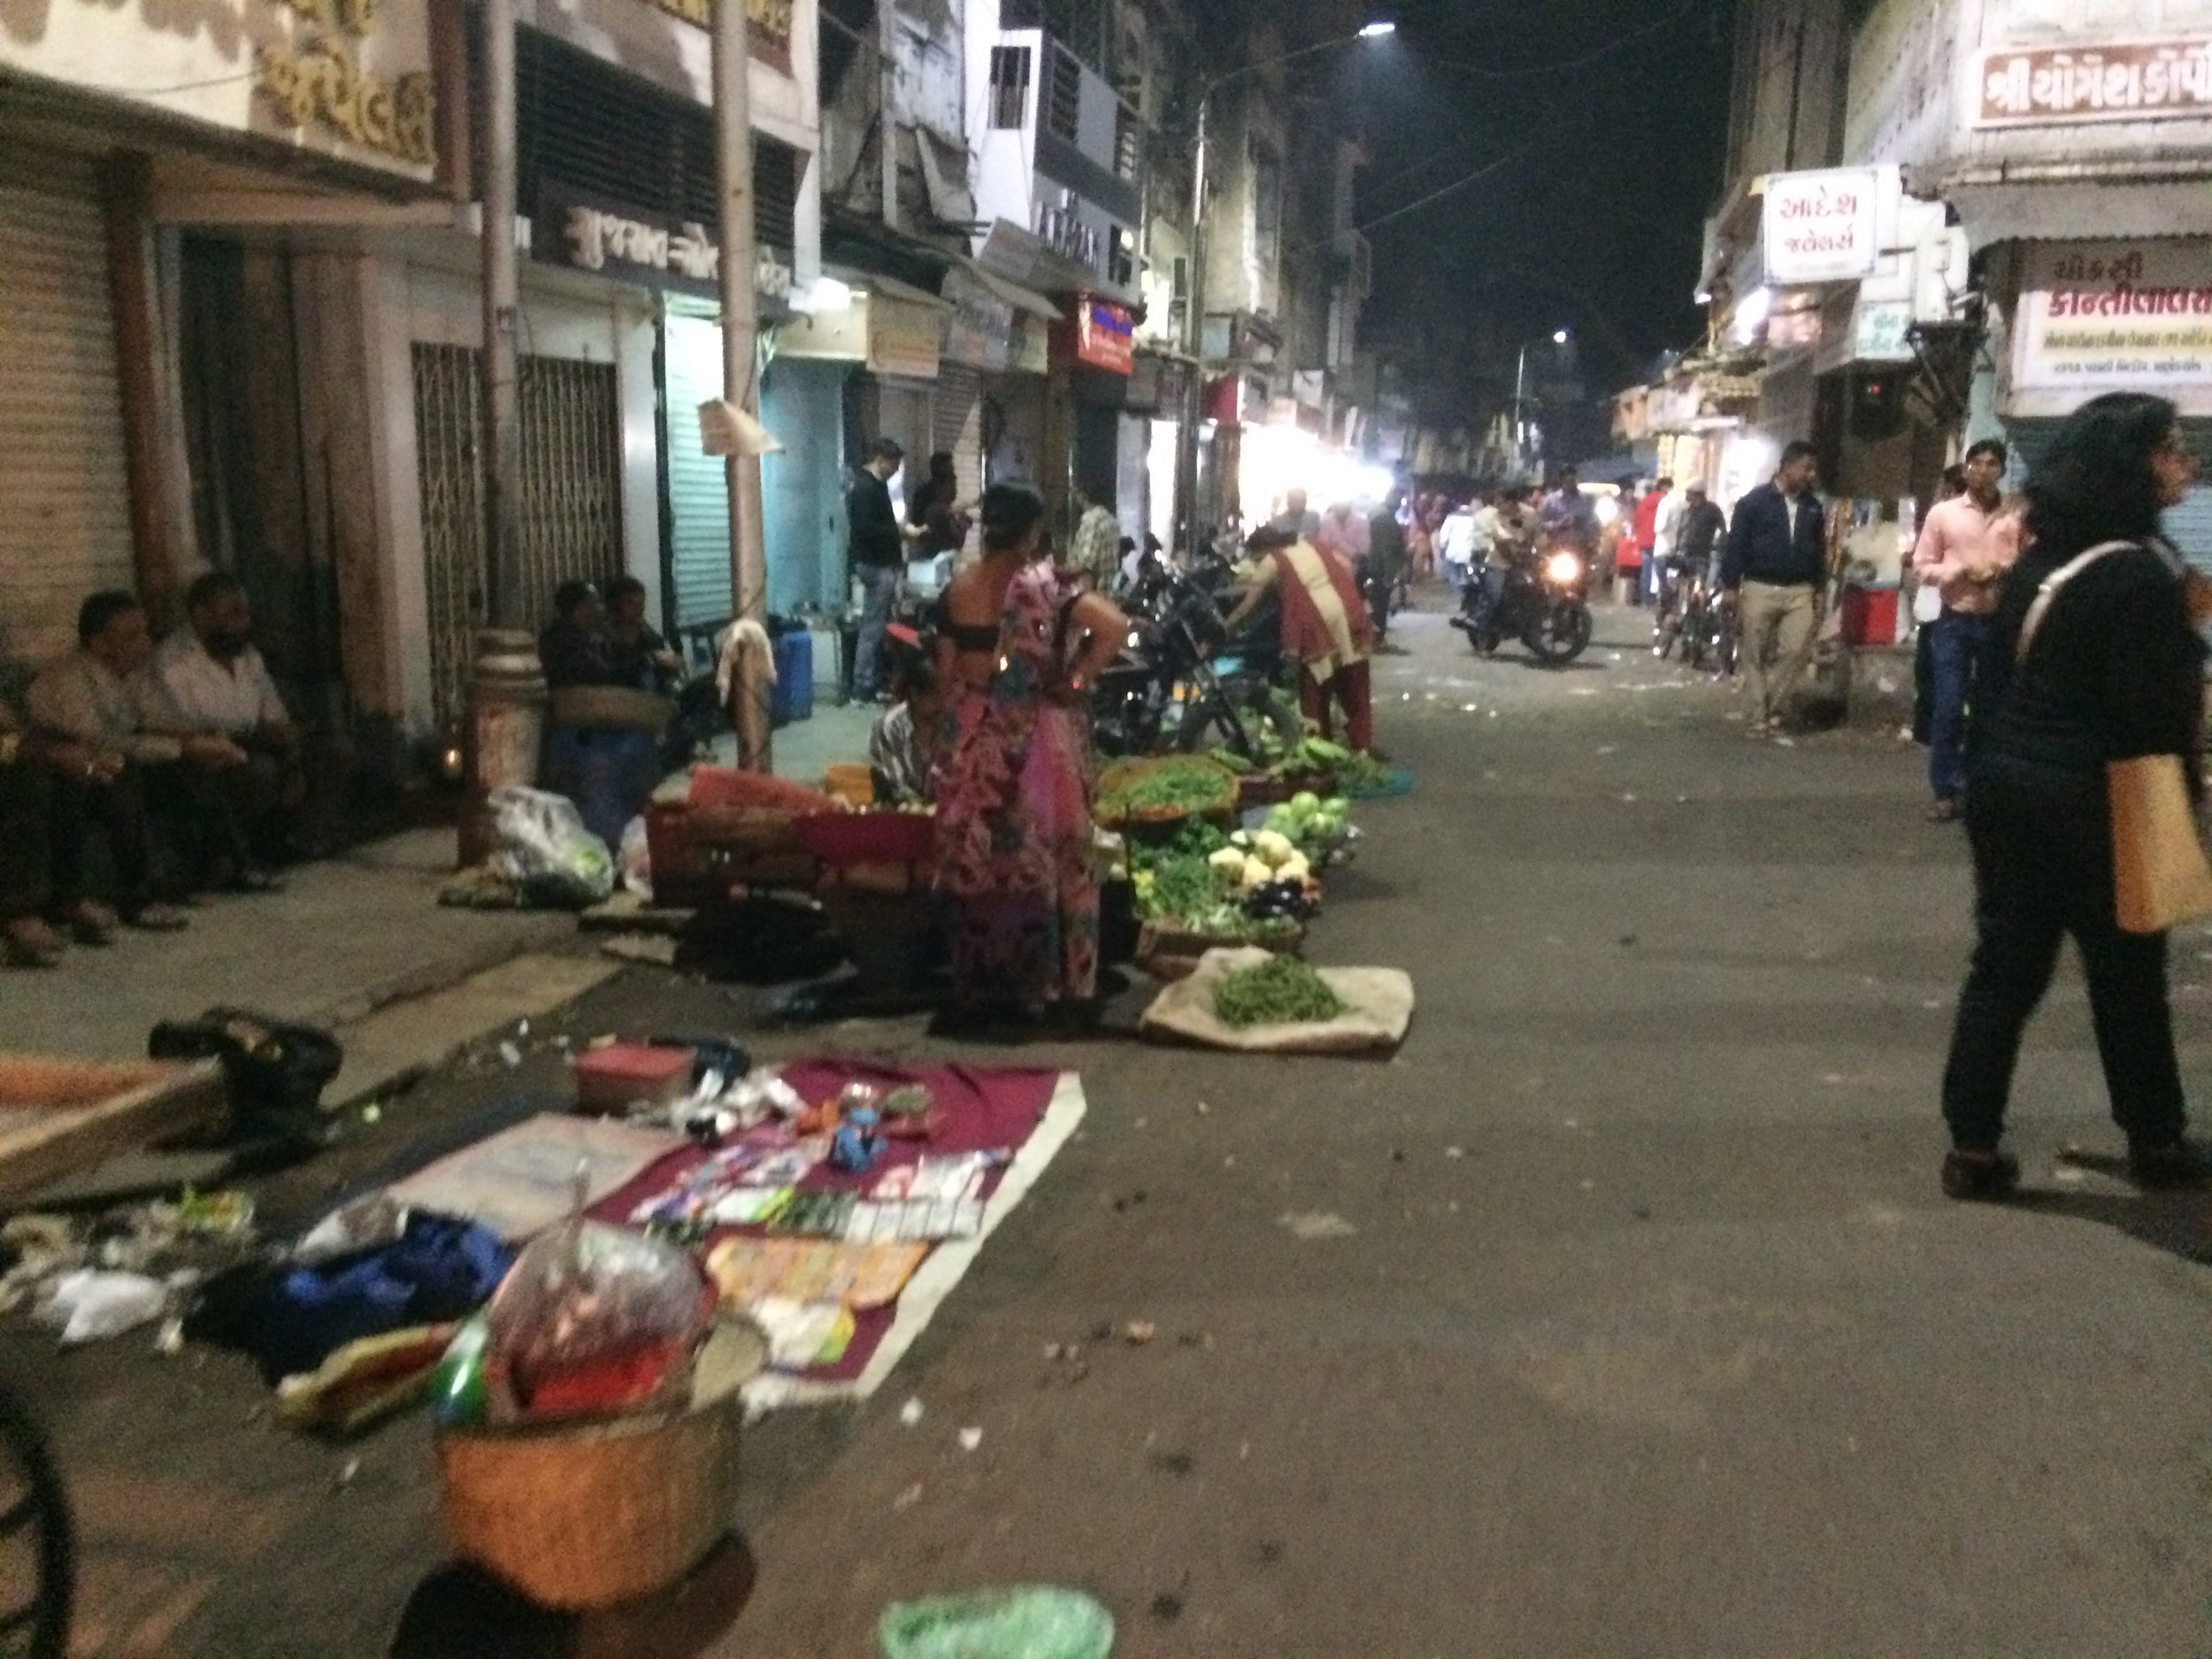 Manek Chowk in the Old City of Ahmedabad, a well-used and vibrant part of the city – here around midnight.